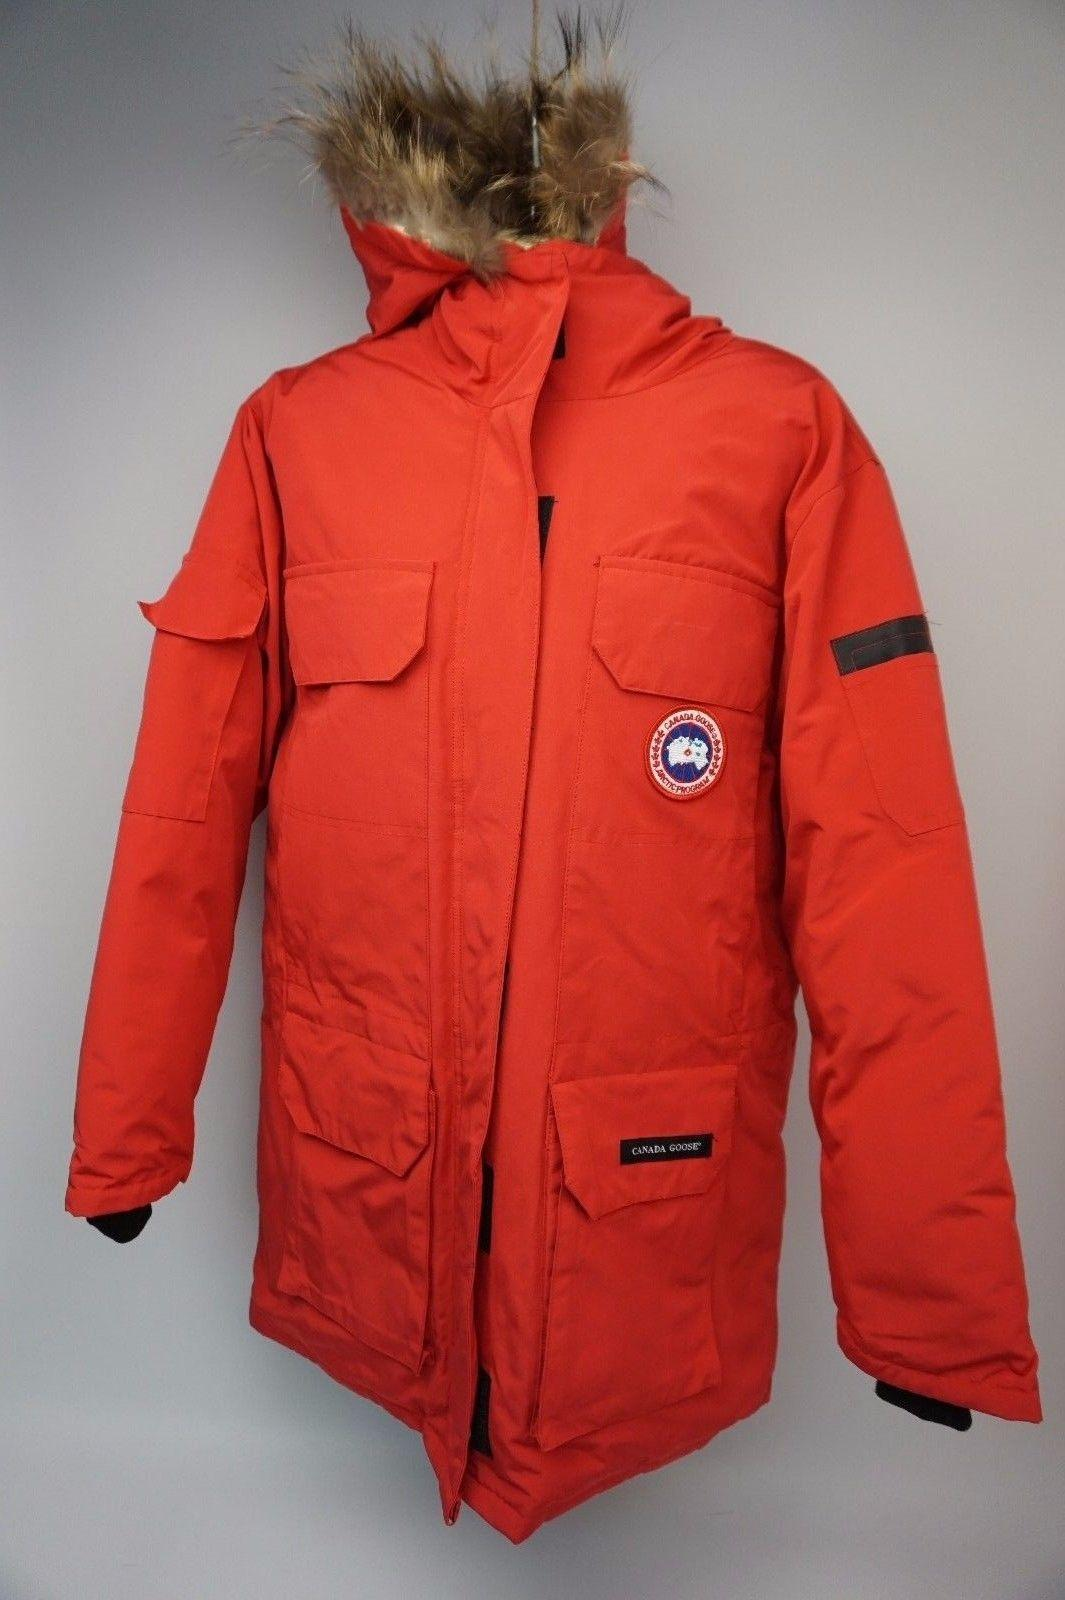 Canada Goose Red Women's Expedition Arctic Program Parka Puffy/Ski Coat Size 16 (XL, Plus 0x) - Tradesy